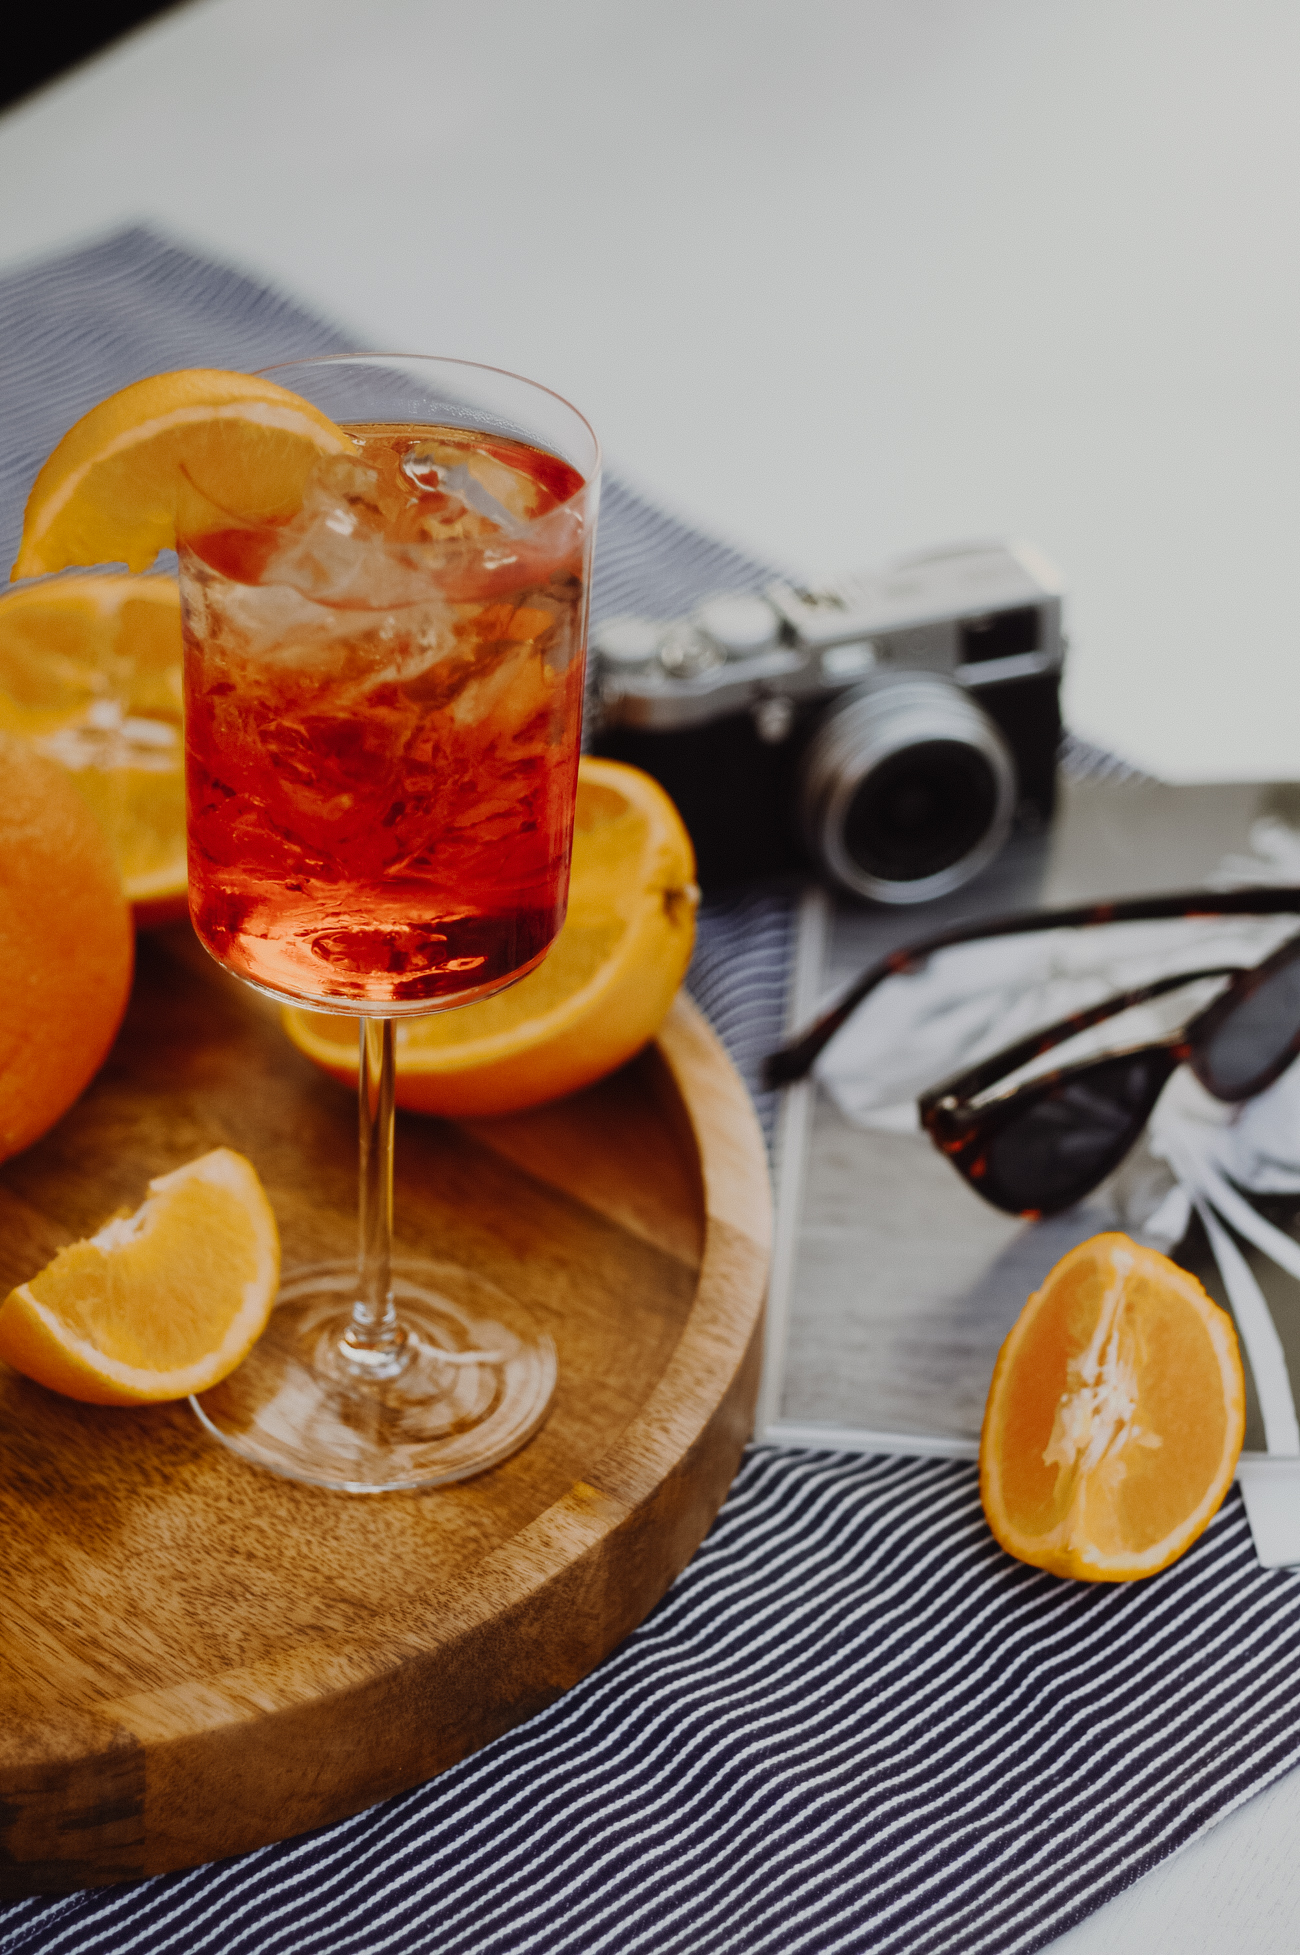 HOW-TO APEROL SPRITZ COCKTAIL - - Ice-Aperol- Prosecco DOC- Soda Water- Orange (sliced)Fill a wine glass with ice chips. Next, pour equal parts Prosecco and Aperol. Add a dash of soda water, being careful not to overfill the glass. Garnish with orange slice and enjoy!